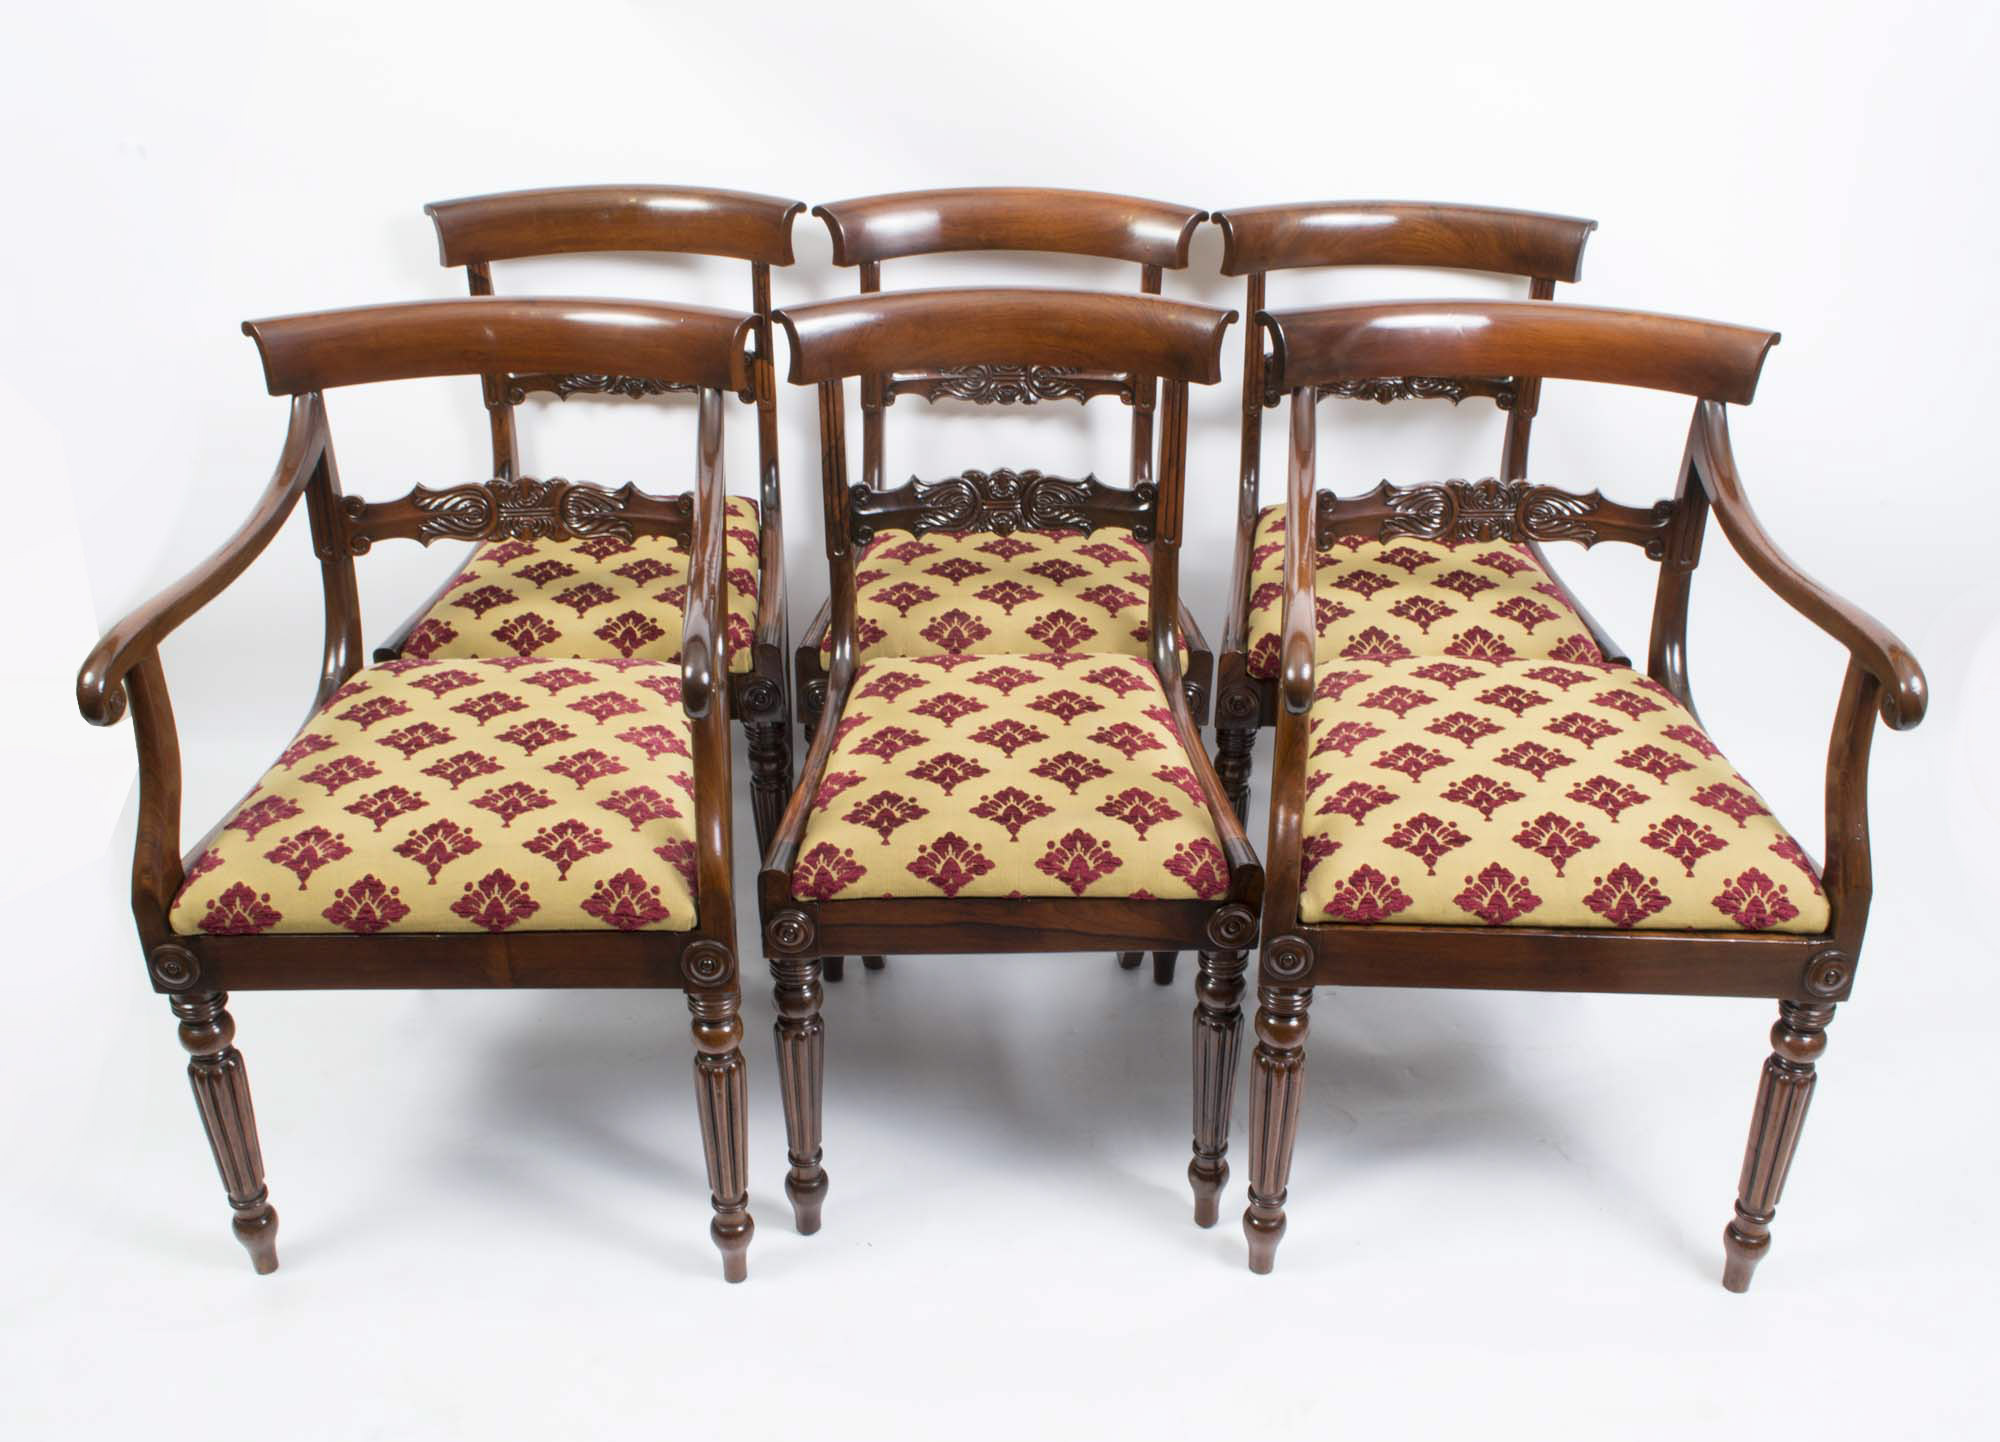 Antique Set 6 William IV Rosewood Dining Chairs c 1835